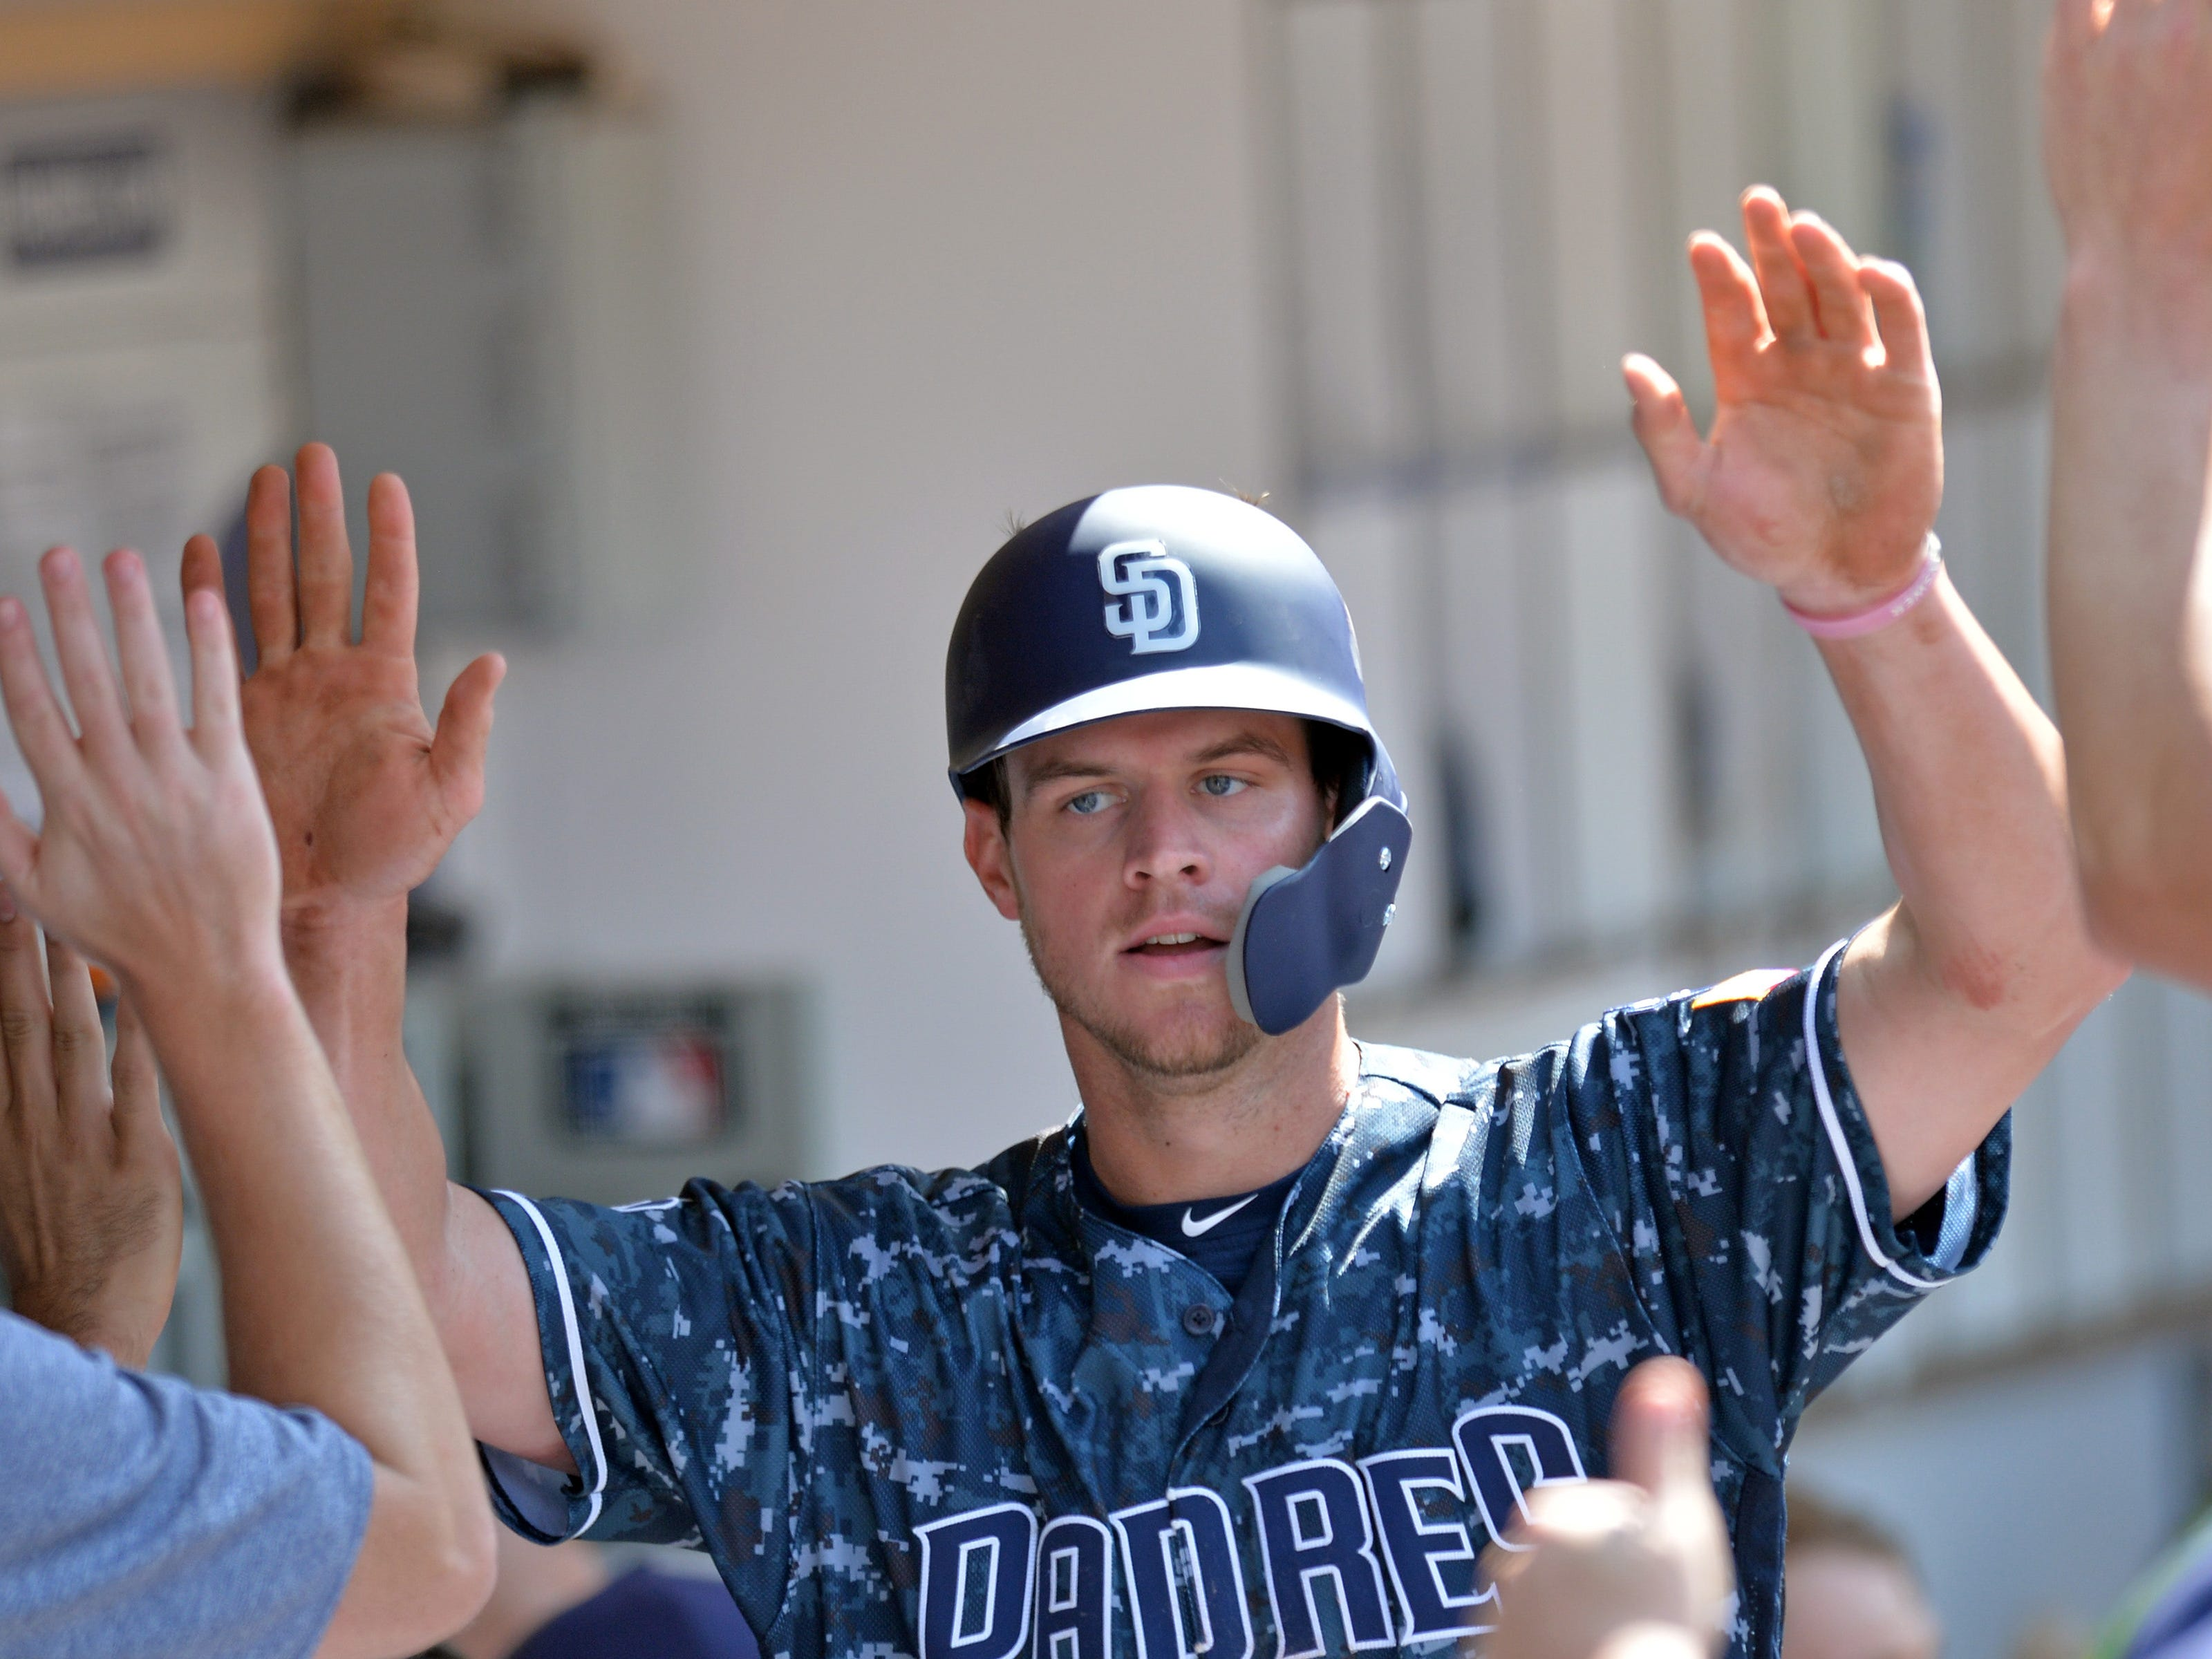 Aug 19, 2018; San Diego, CA, USA; San Diego Padres third baseman Wil Myers (4) is congratulated after scoring in the sixth inning against the Arizona Diamondbacks at Petco Park. Mandatory Credit: Jake Roth-USA TODAY Sports